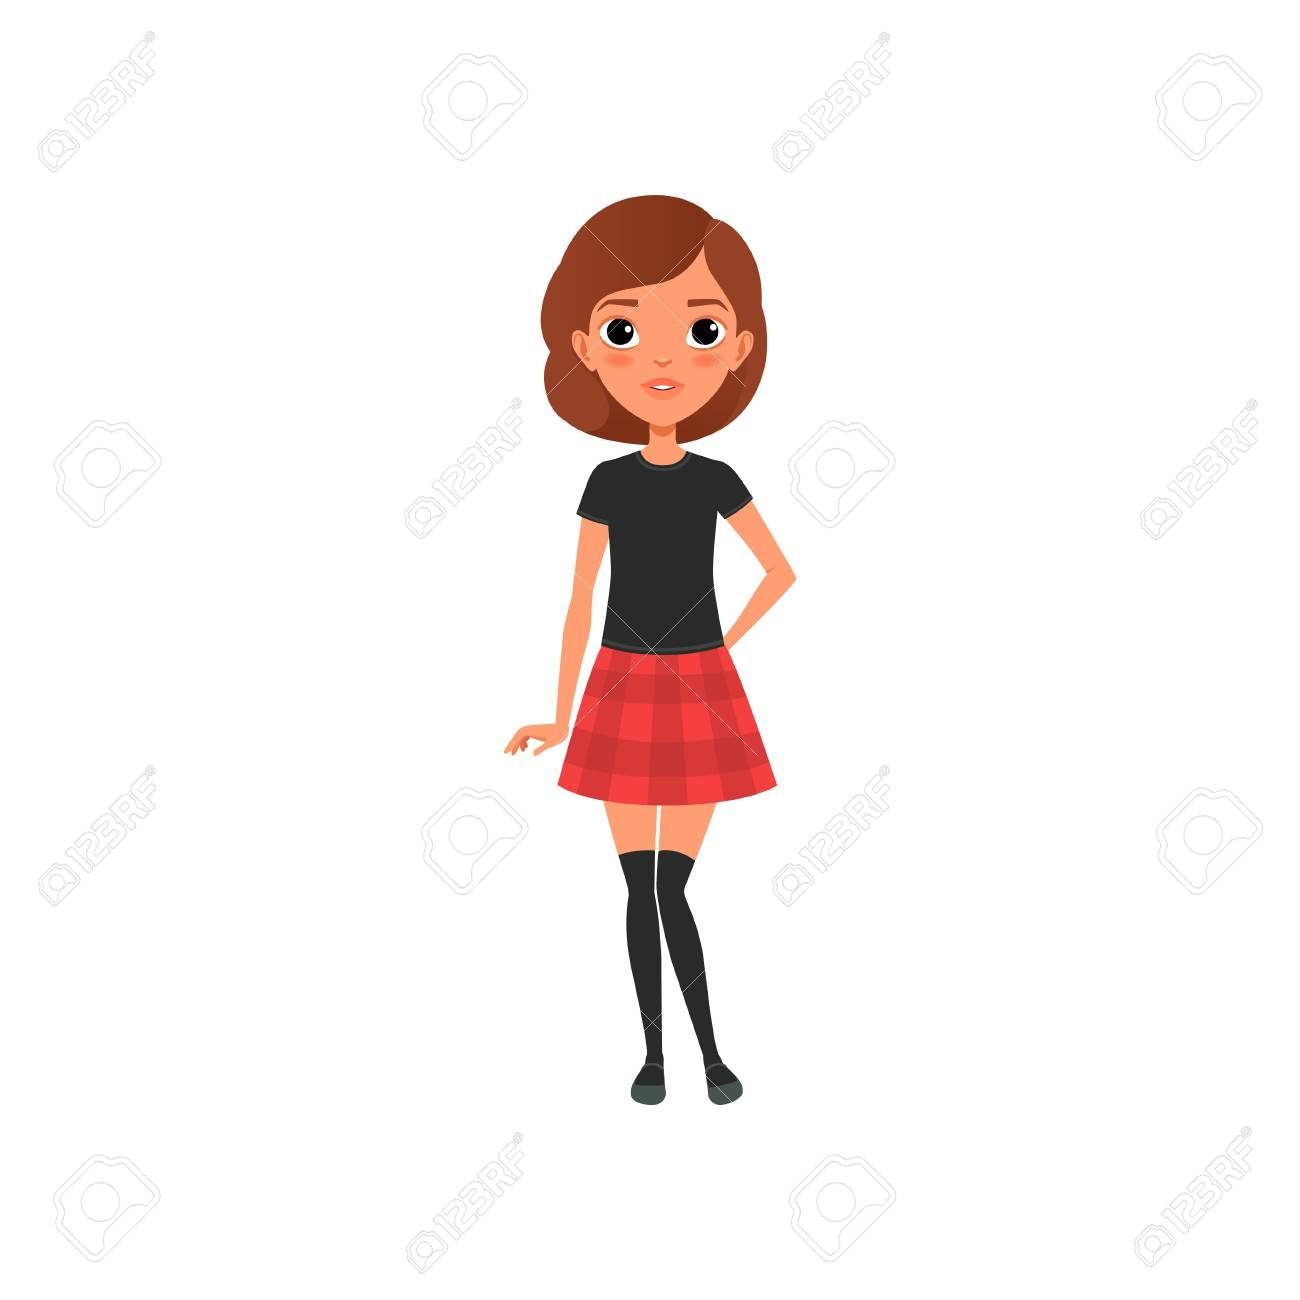 Beautiful Brunette Girl In Stylish Outfit Black T Shirt Knee Royalty Free Cliparts Vectors And Stock Illustration Image 94353974